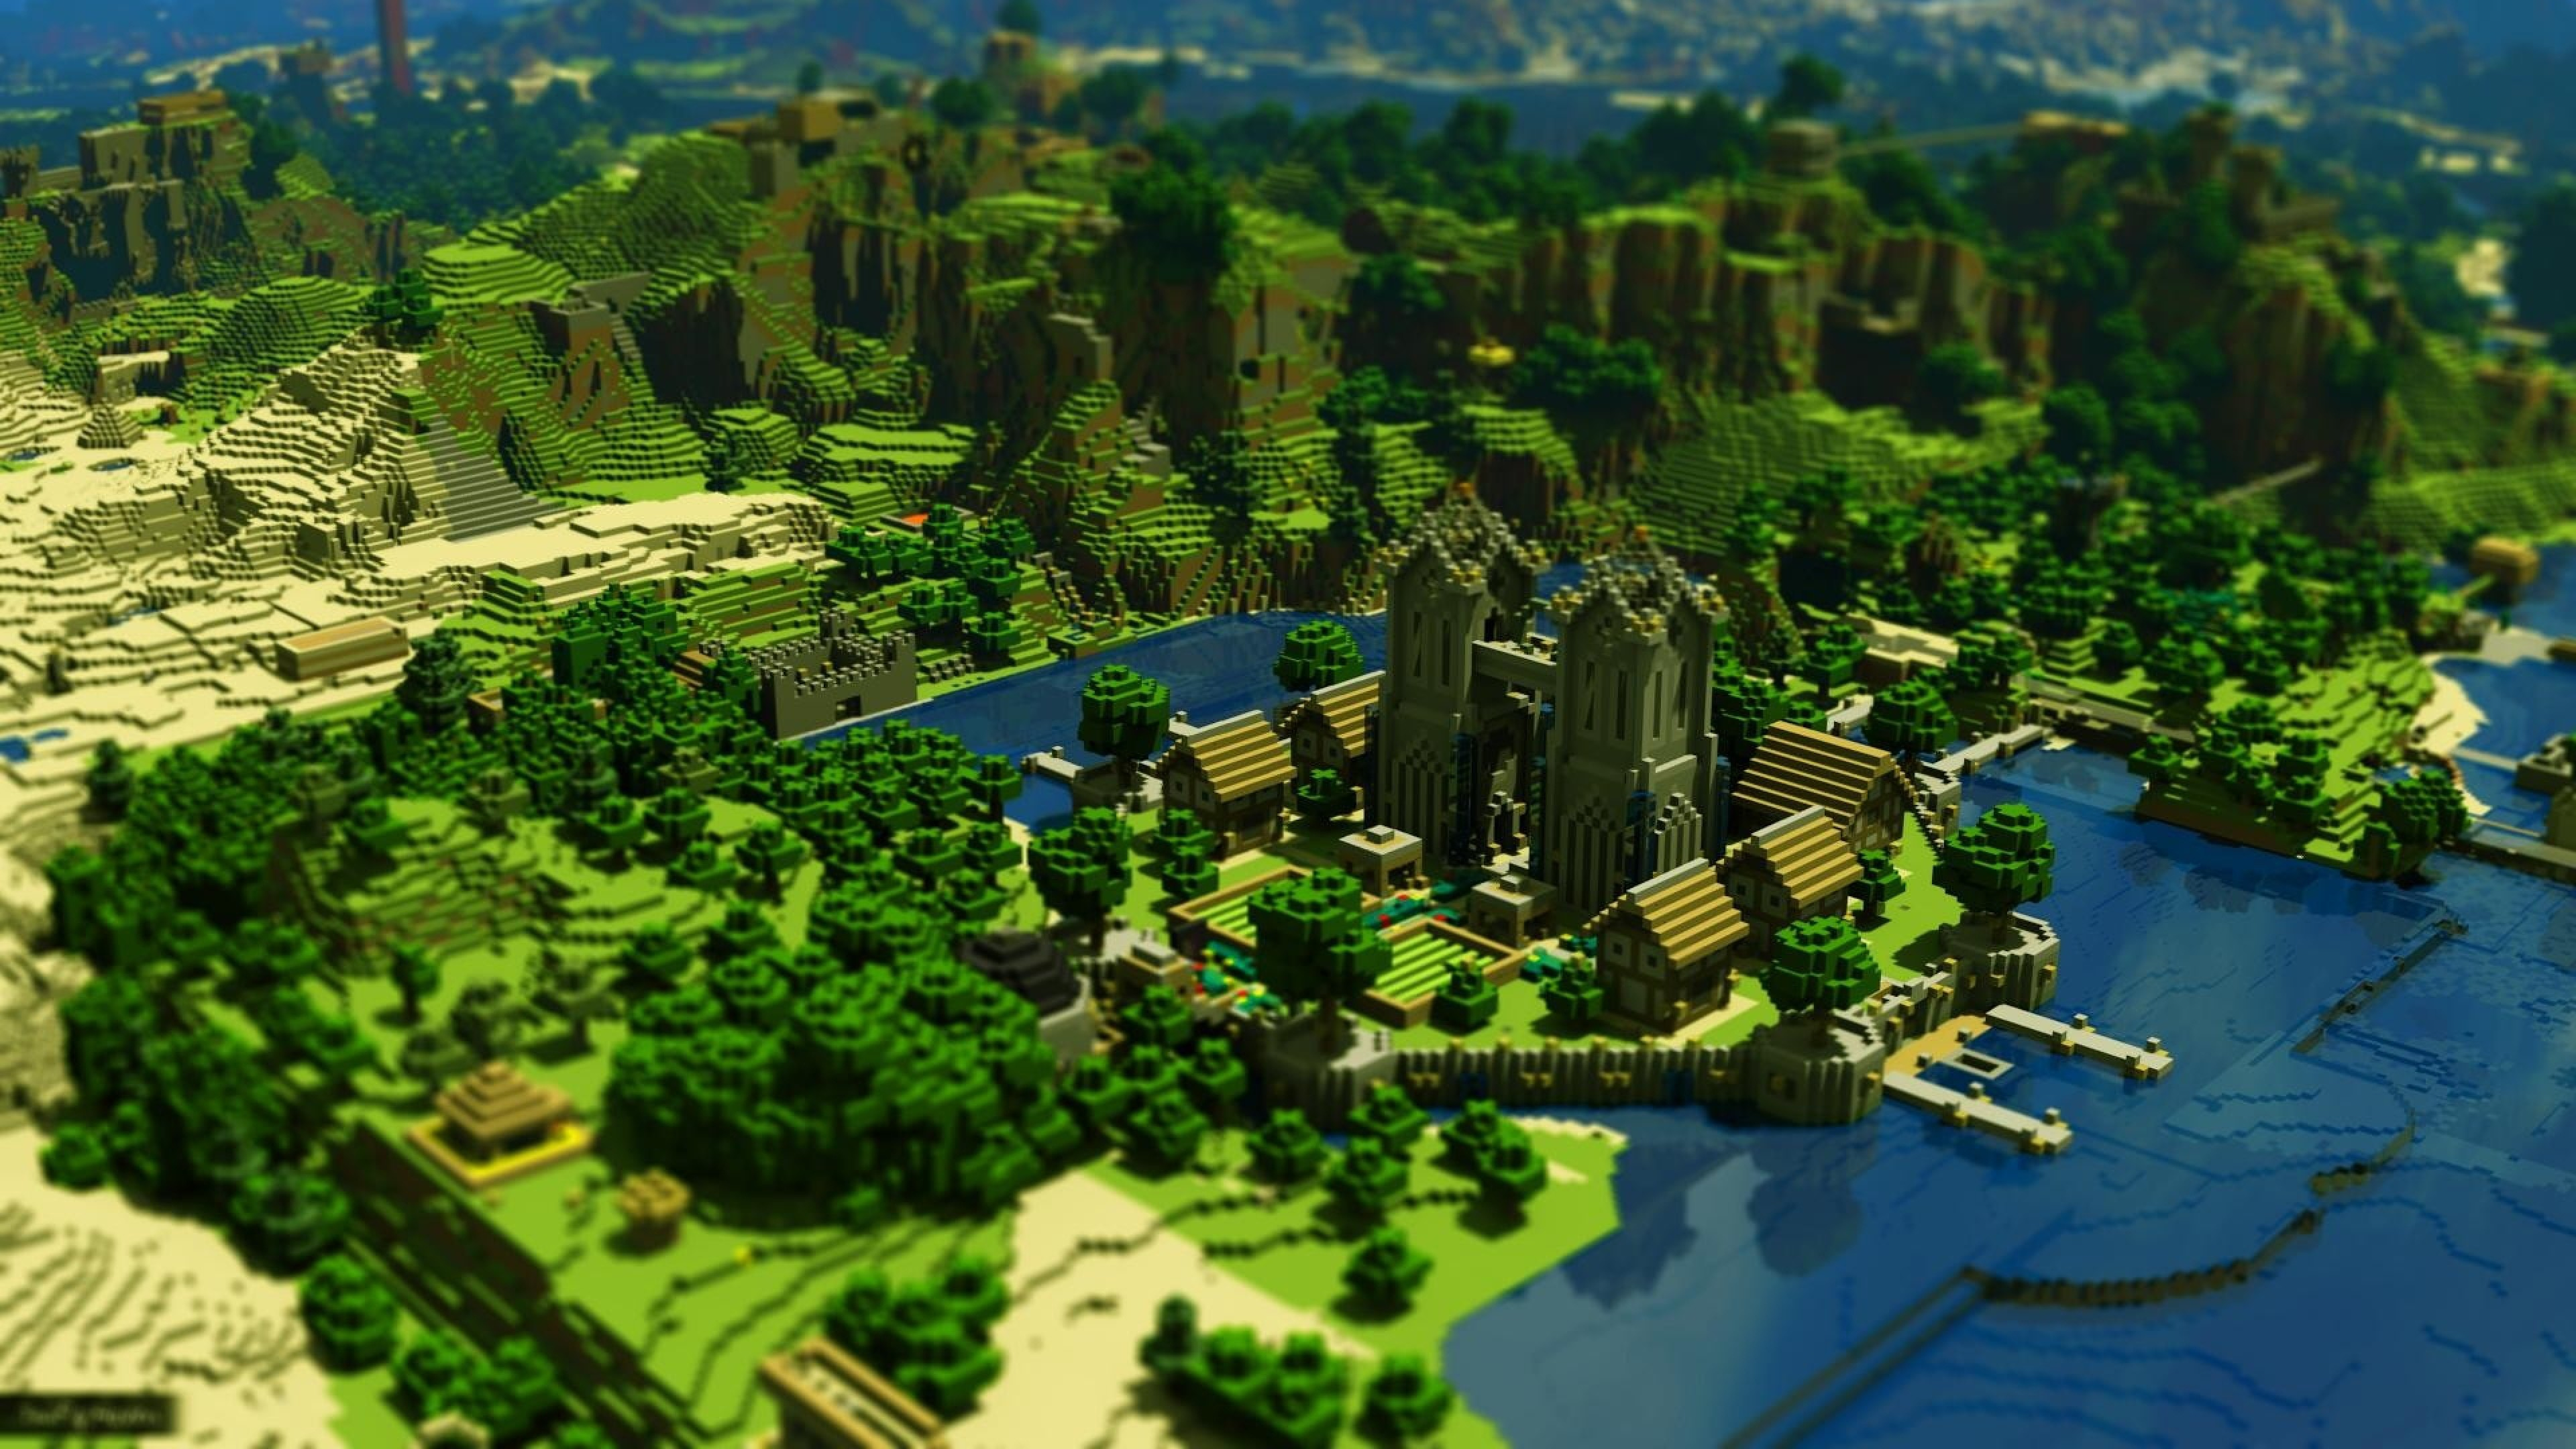 … Background 4K Ultra HD. Wallpaper minecraft, trees, houses,  mountains, water